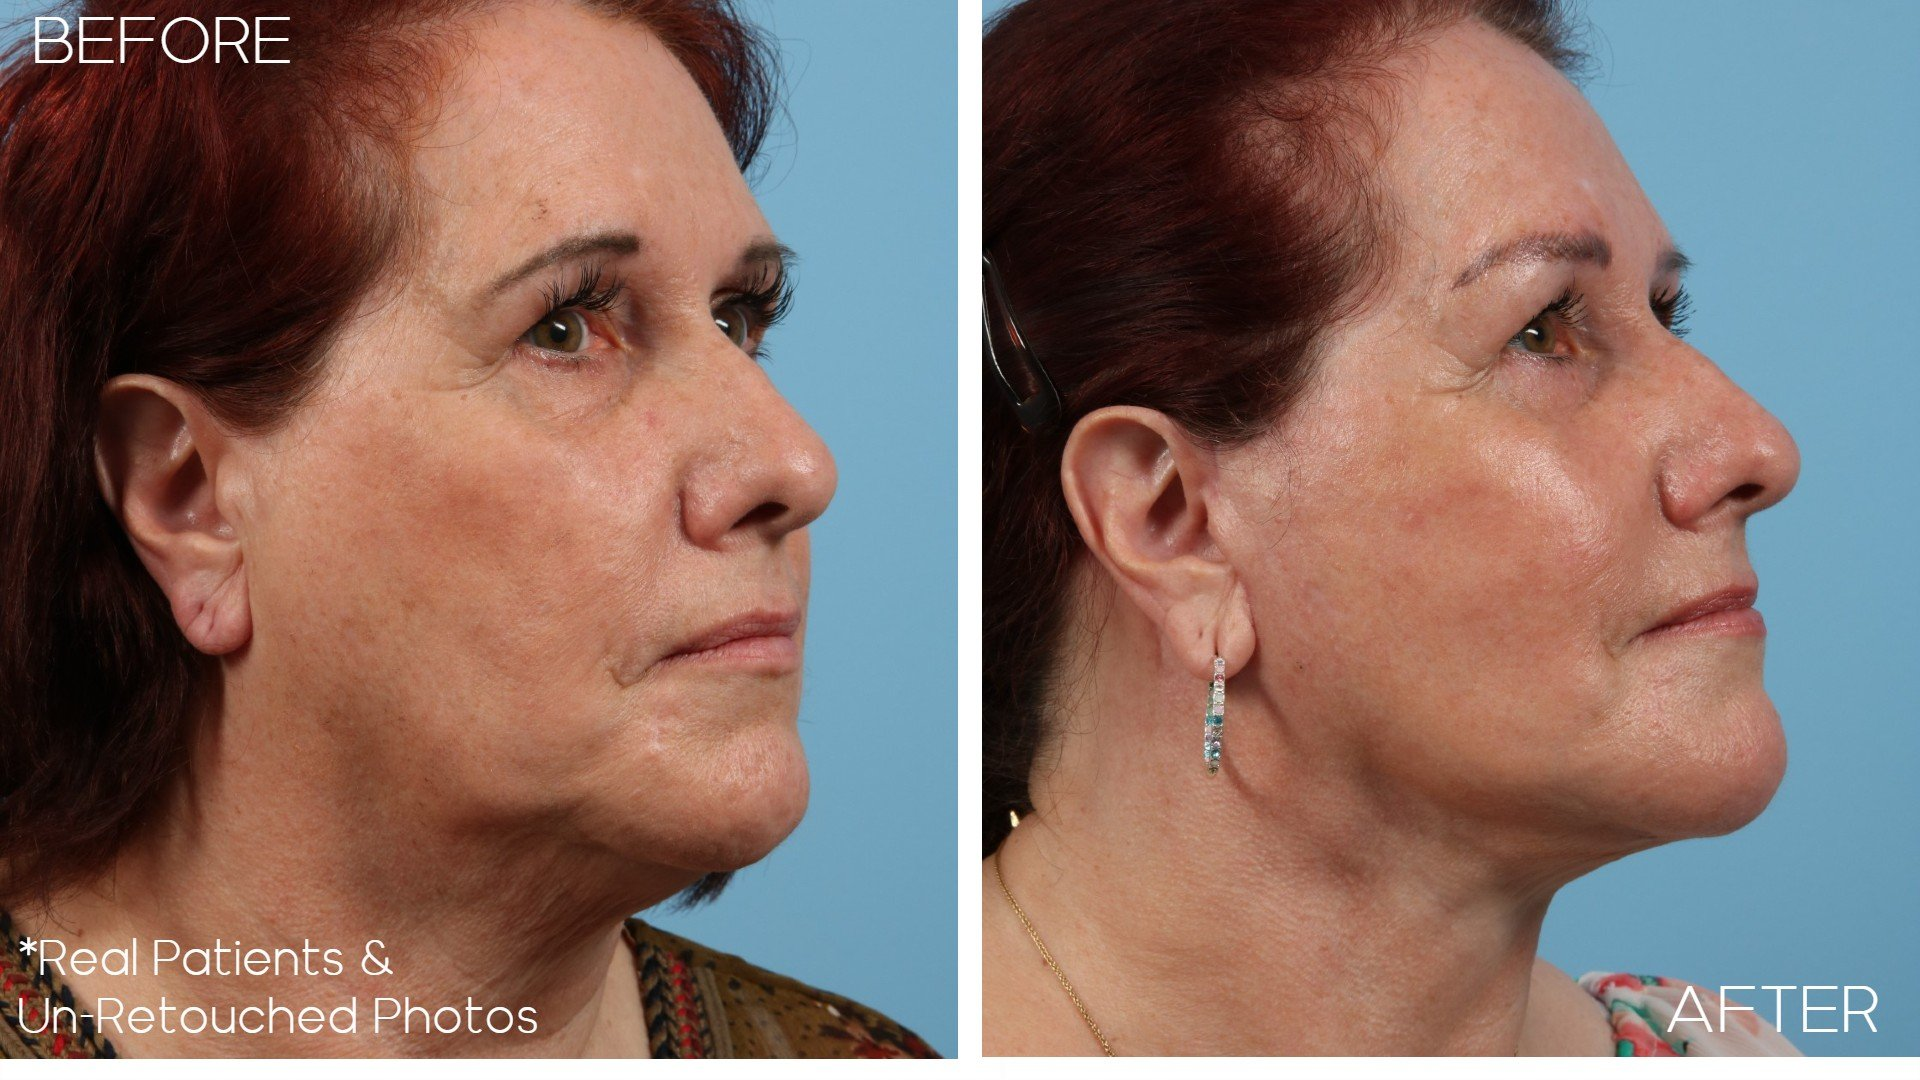 Case-2297-Facelift-Before-and-After